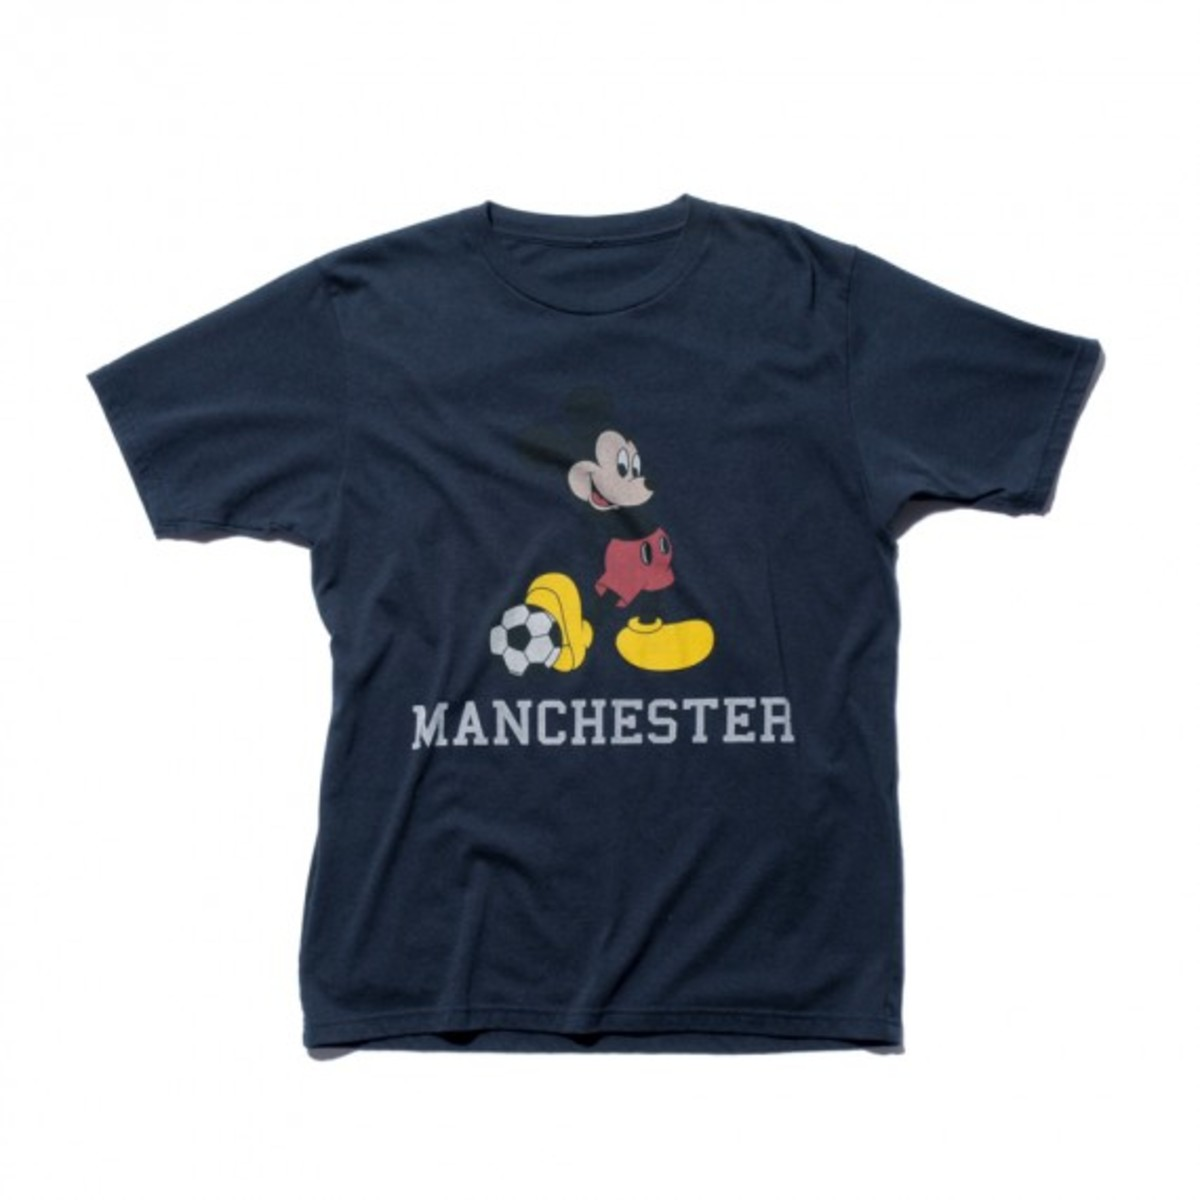 retro-span-plating-stitch-mickey-mouse-city-name-t-shirt-01